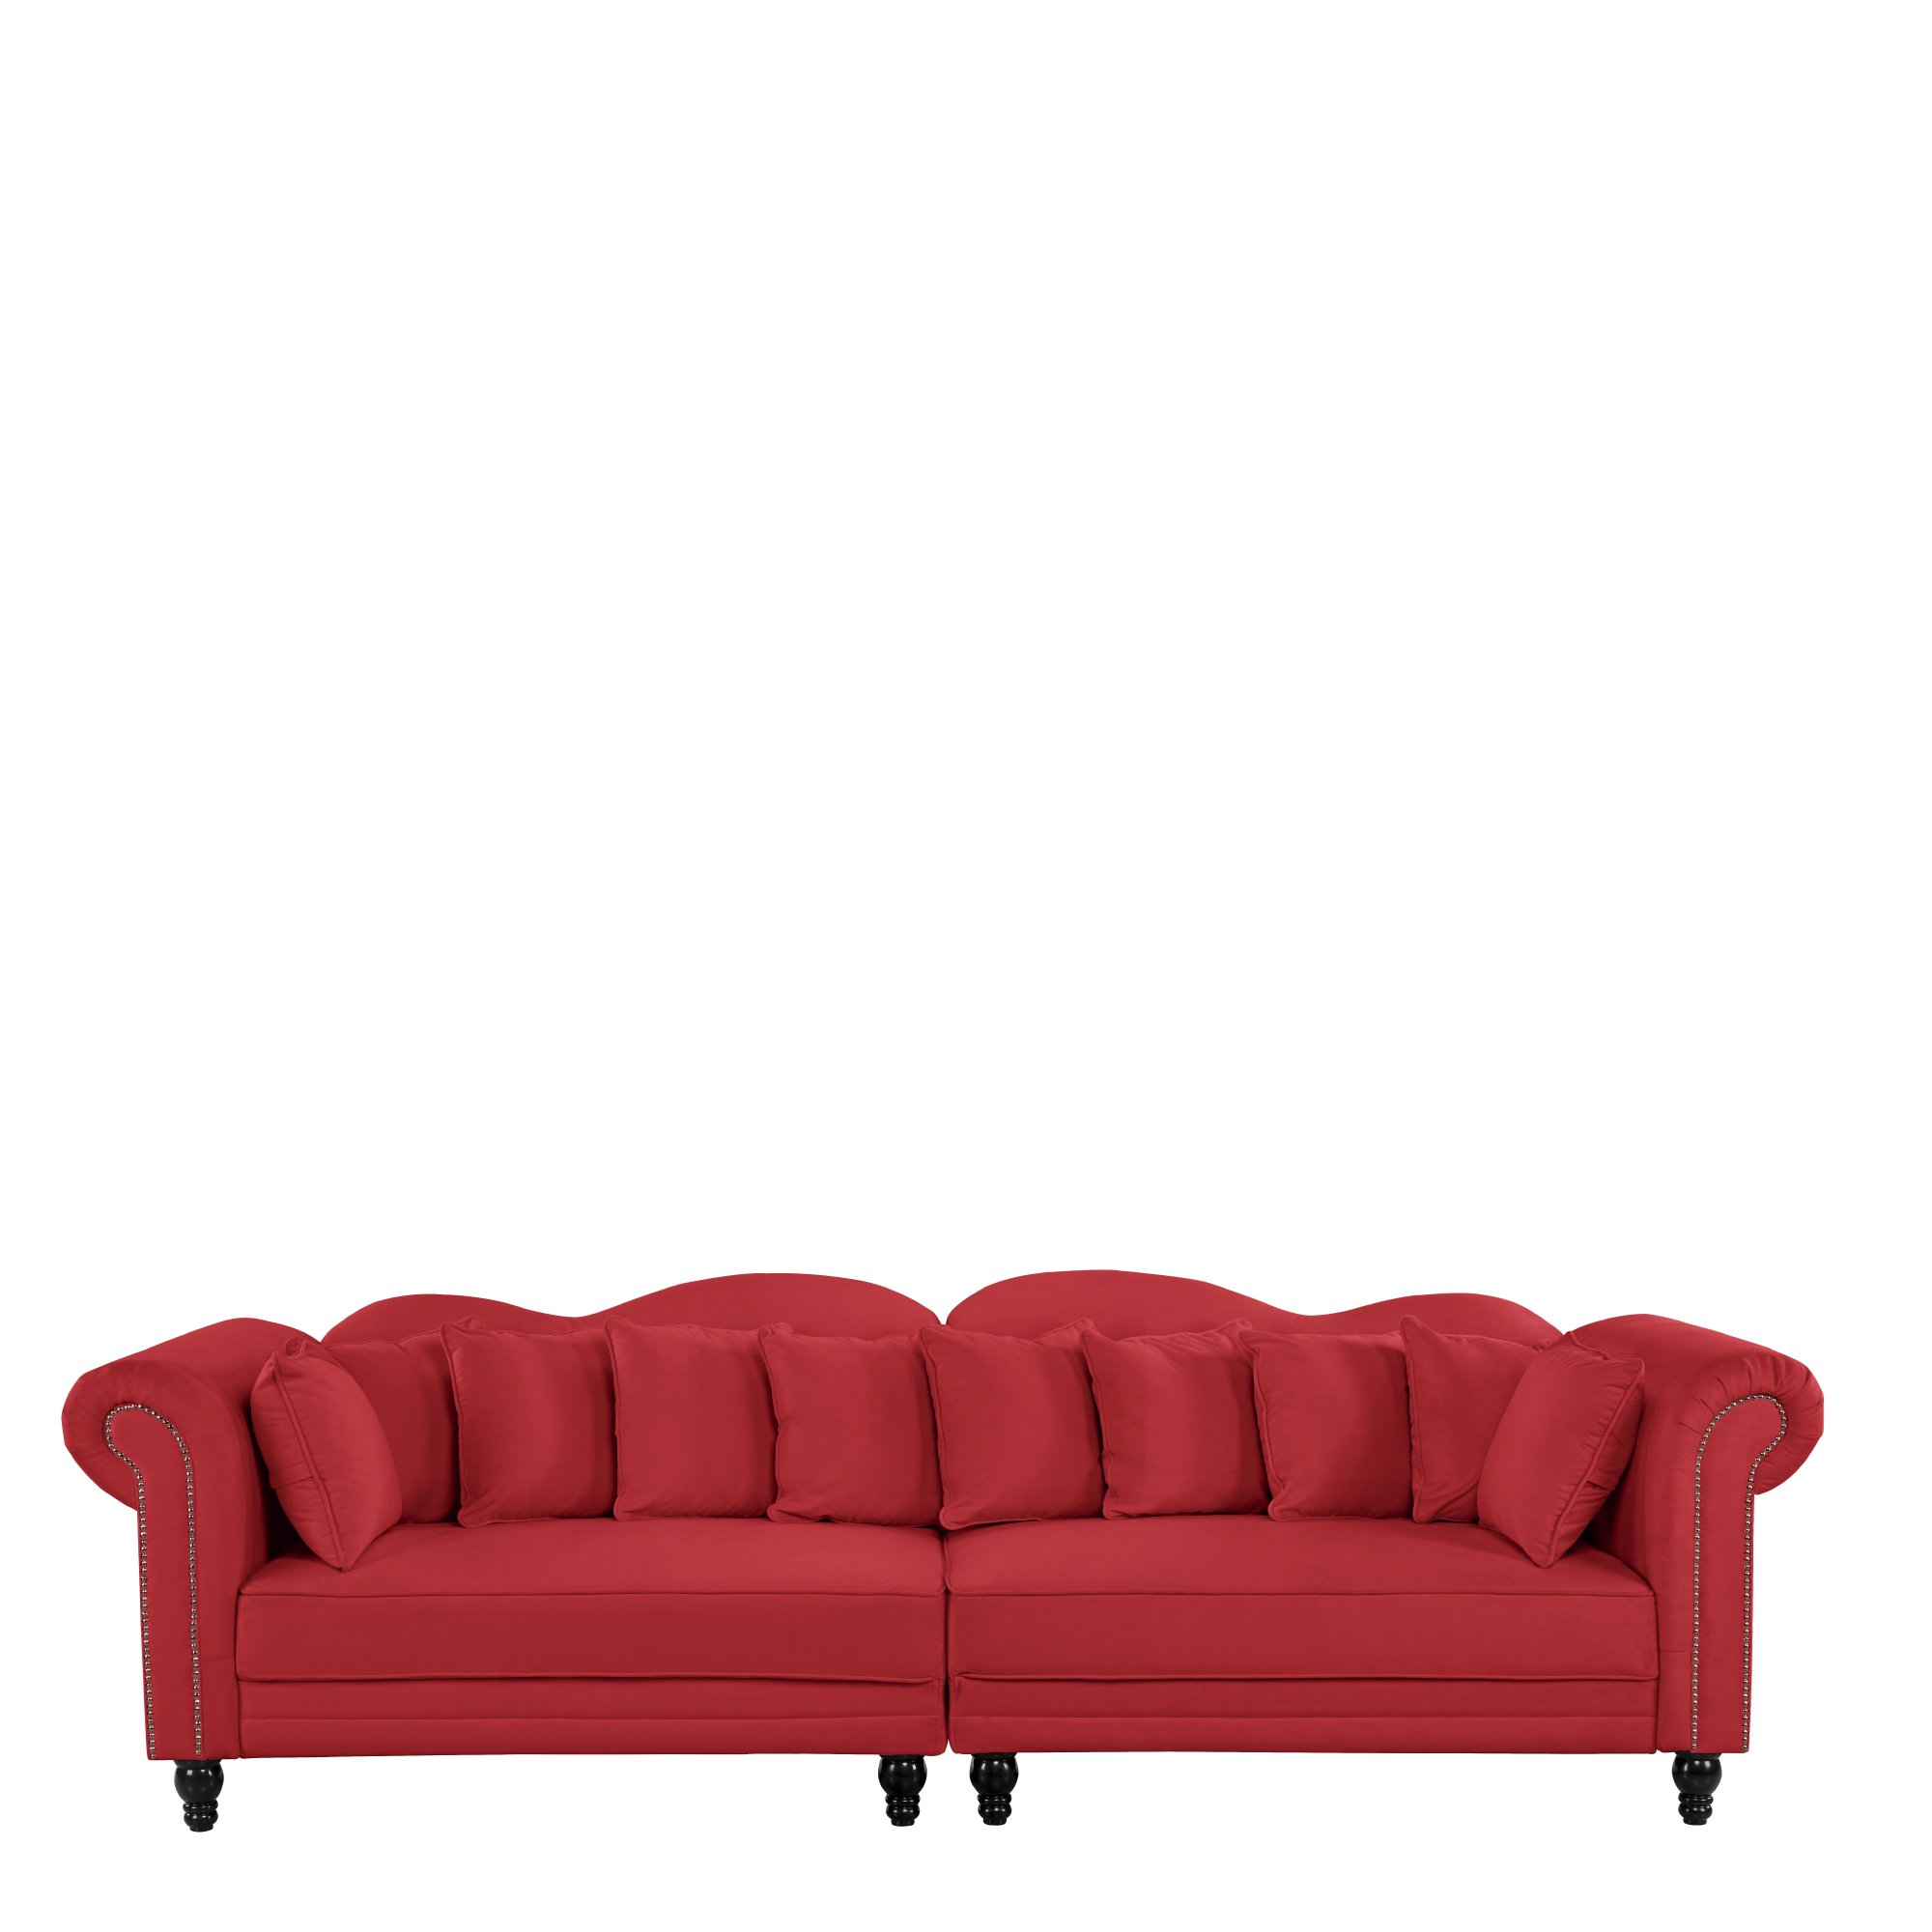 Details about 2 PC Large Chesterfield Sofa, Velvet Couch w/ Scroll Arms,  Nailhead Trim, Red